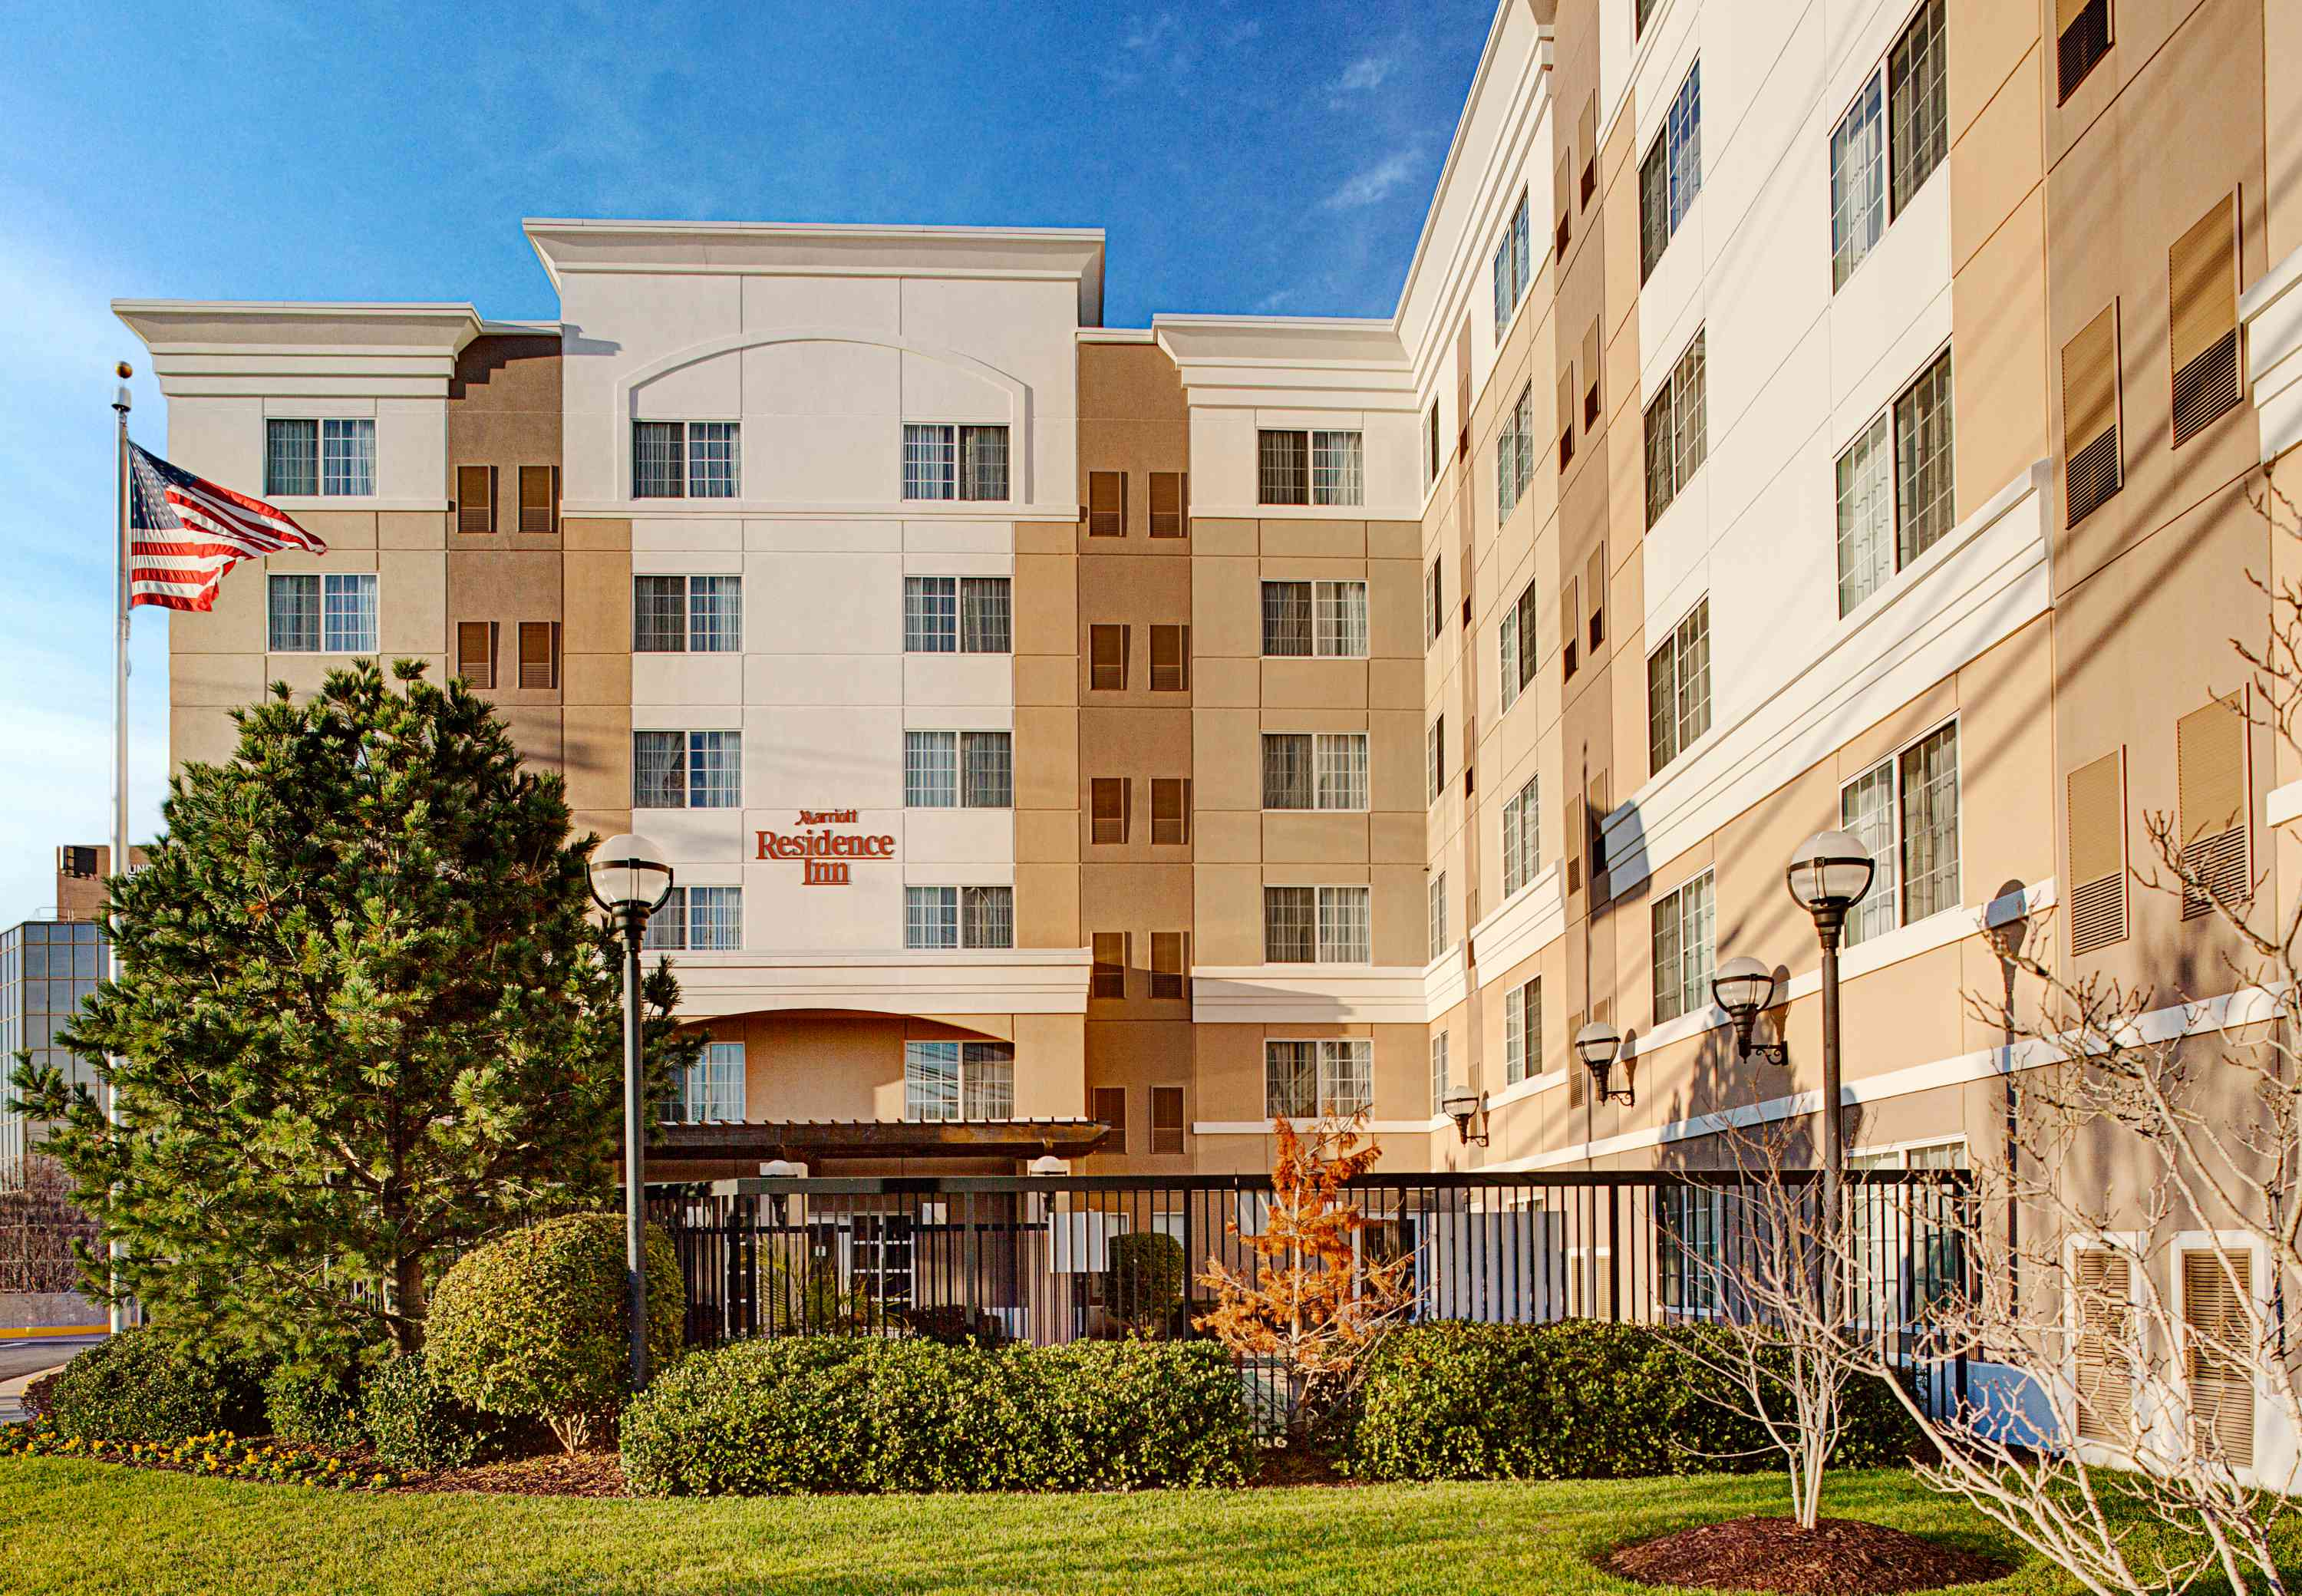 Residence Inn By Marriott Tysons Corner Mall, Vienna